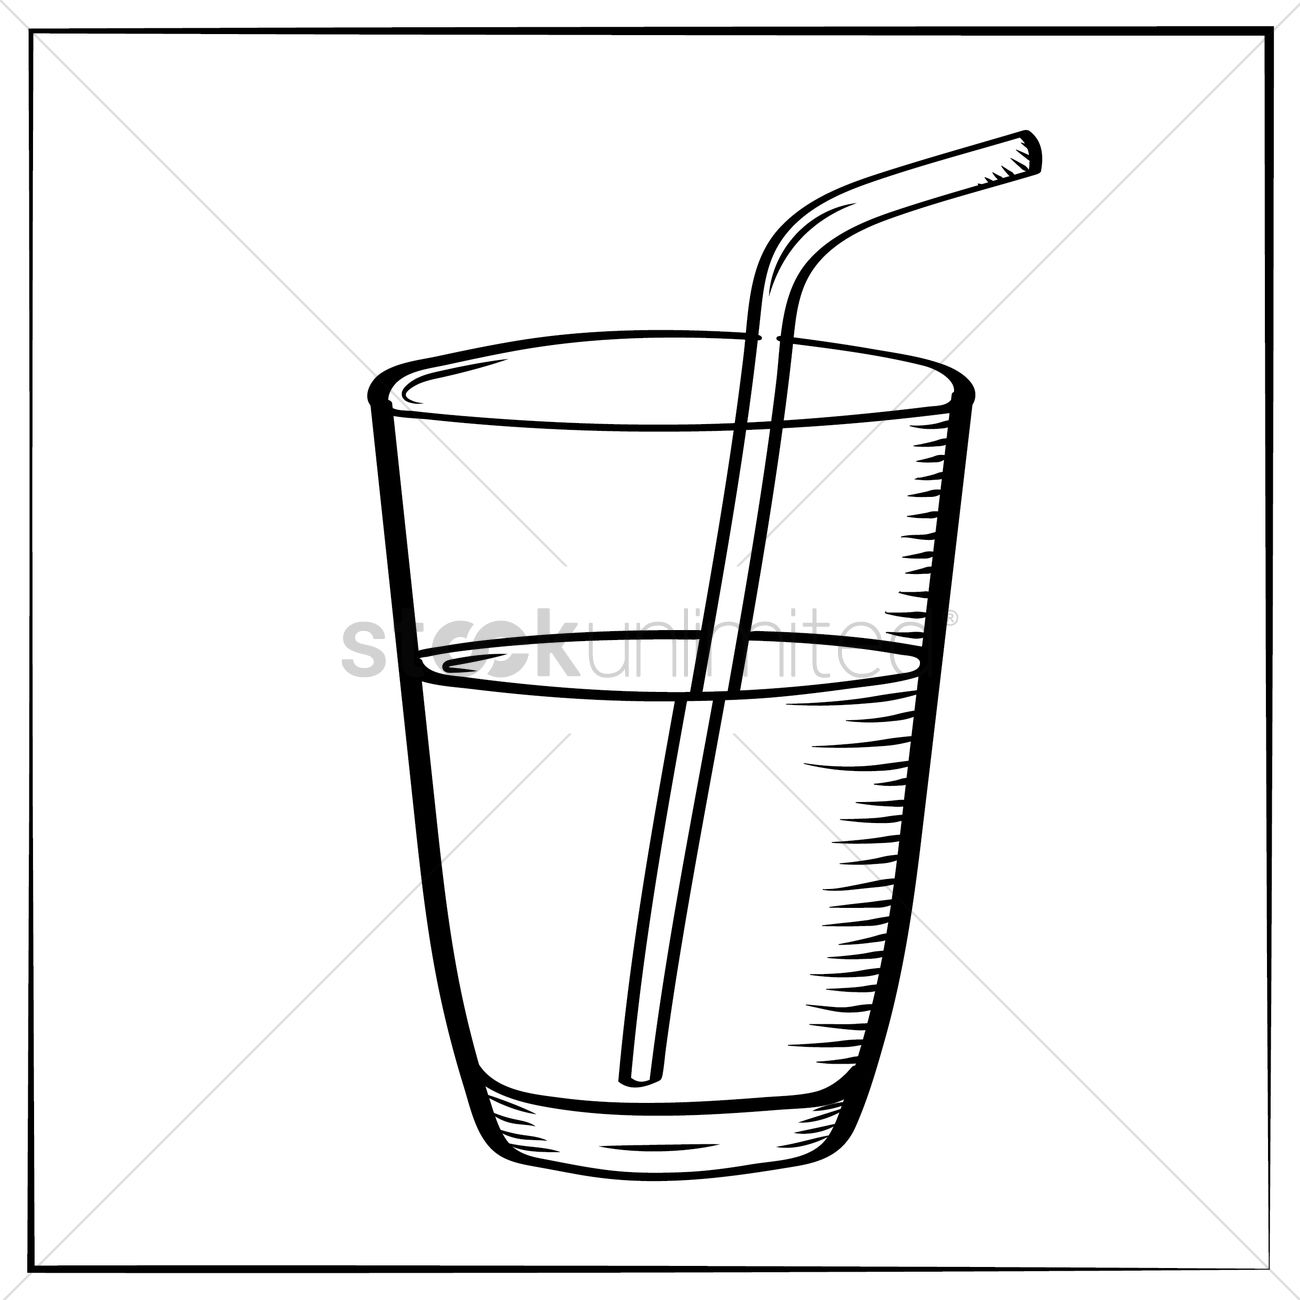 1300x1300 Glass With Straw Vector Image